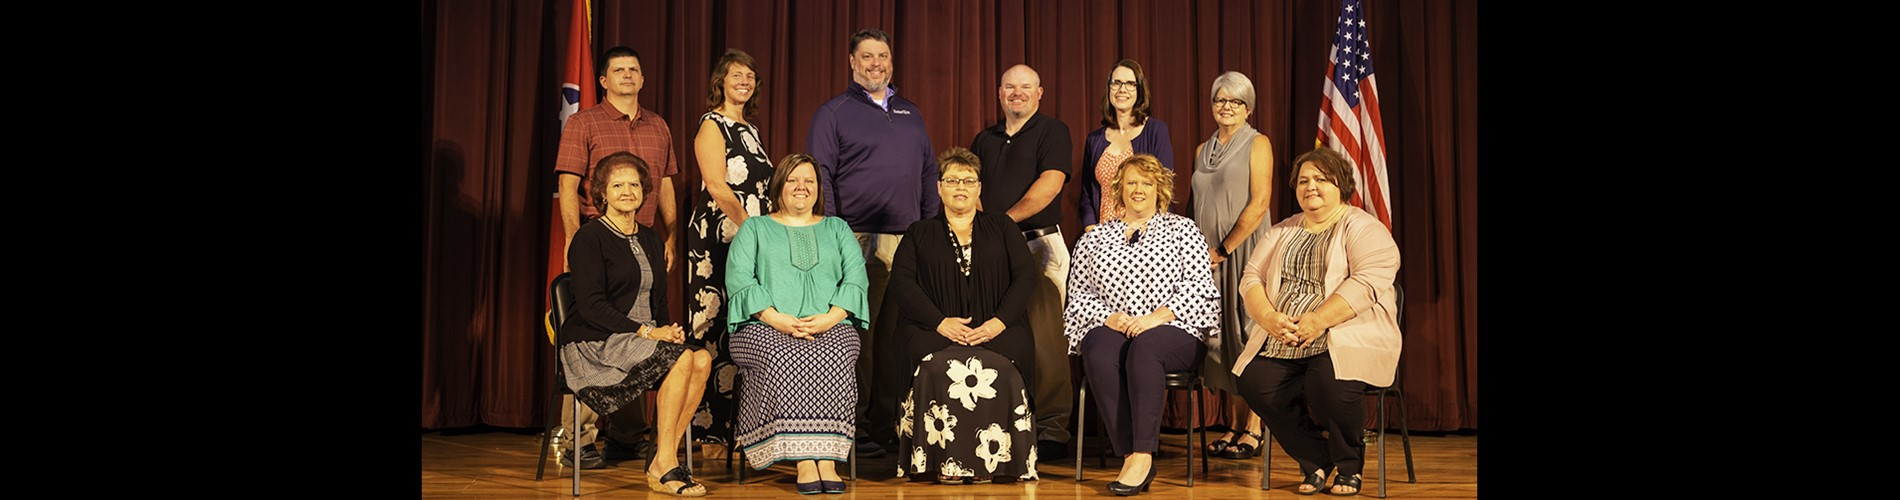 Johnson County Schools Principals 2020-21 School Year